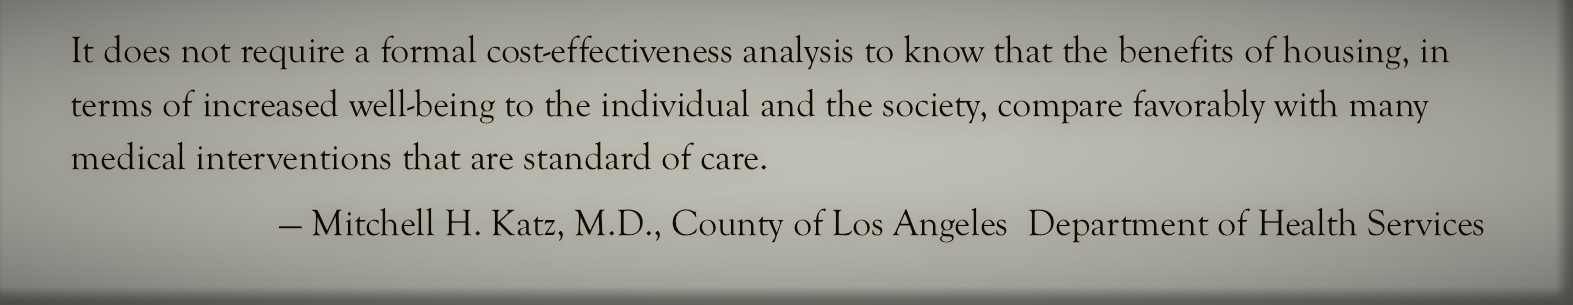 Source: Katz, M. H. (2017). Homelessness—challenges and progress. JAMA - Journal of the American Medical Association, 318(23), 2293–2294. https://doi.org/10.1001/jama.2017.15875